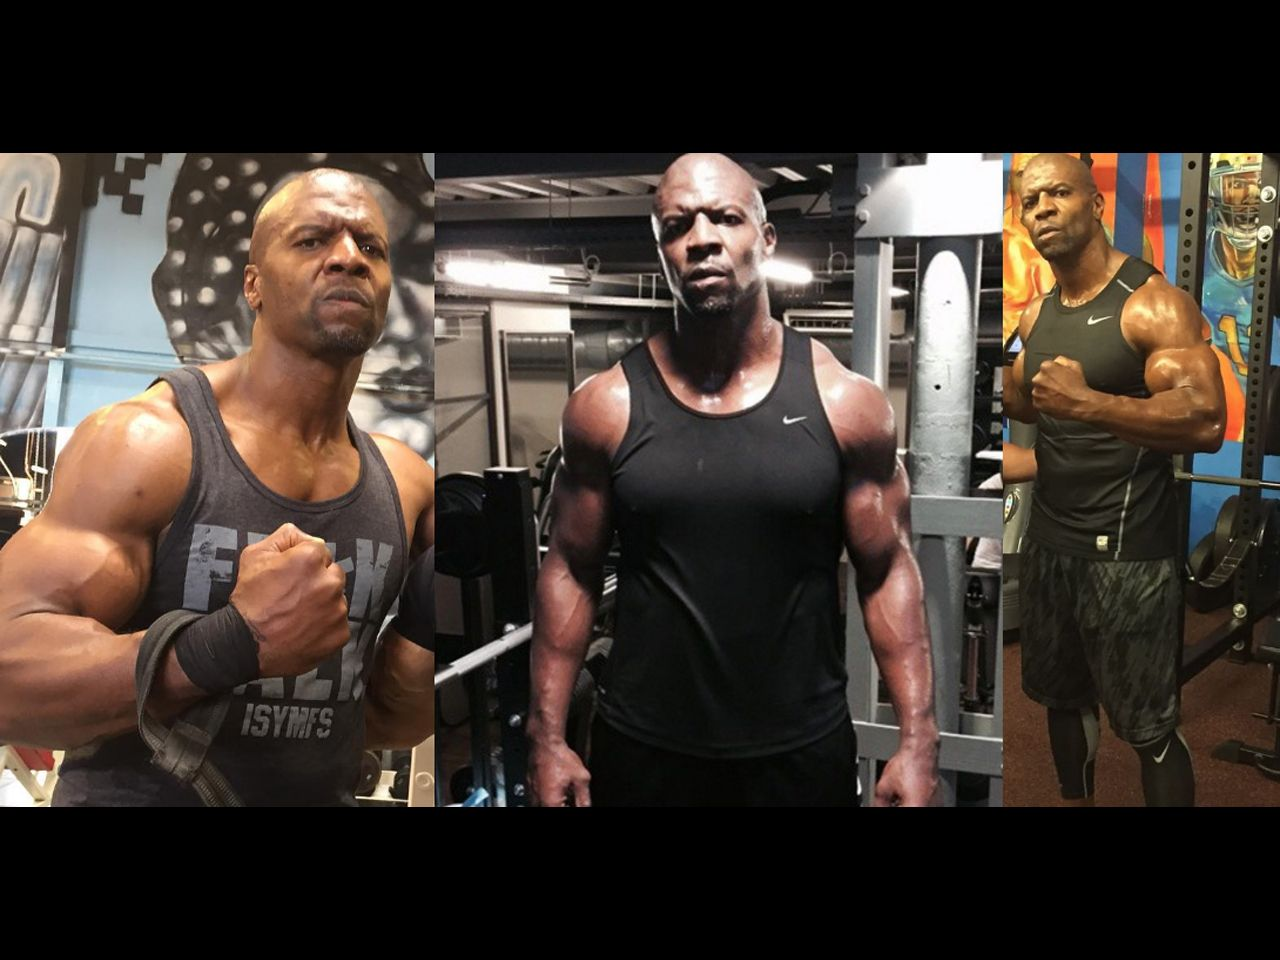 Stunning His Ly Workouts Times Terry Crews Absolutely Shredded Instagram Times Terry Crews Absolutely Shredded Instagram His Terry Crews Fasting Regimen Terry Crews Fasting Video